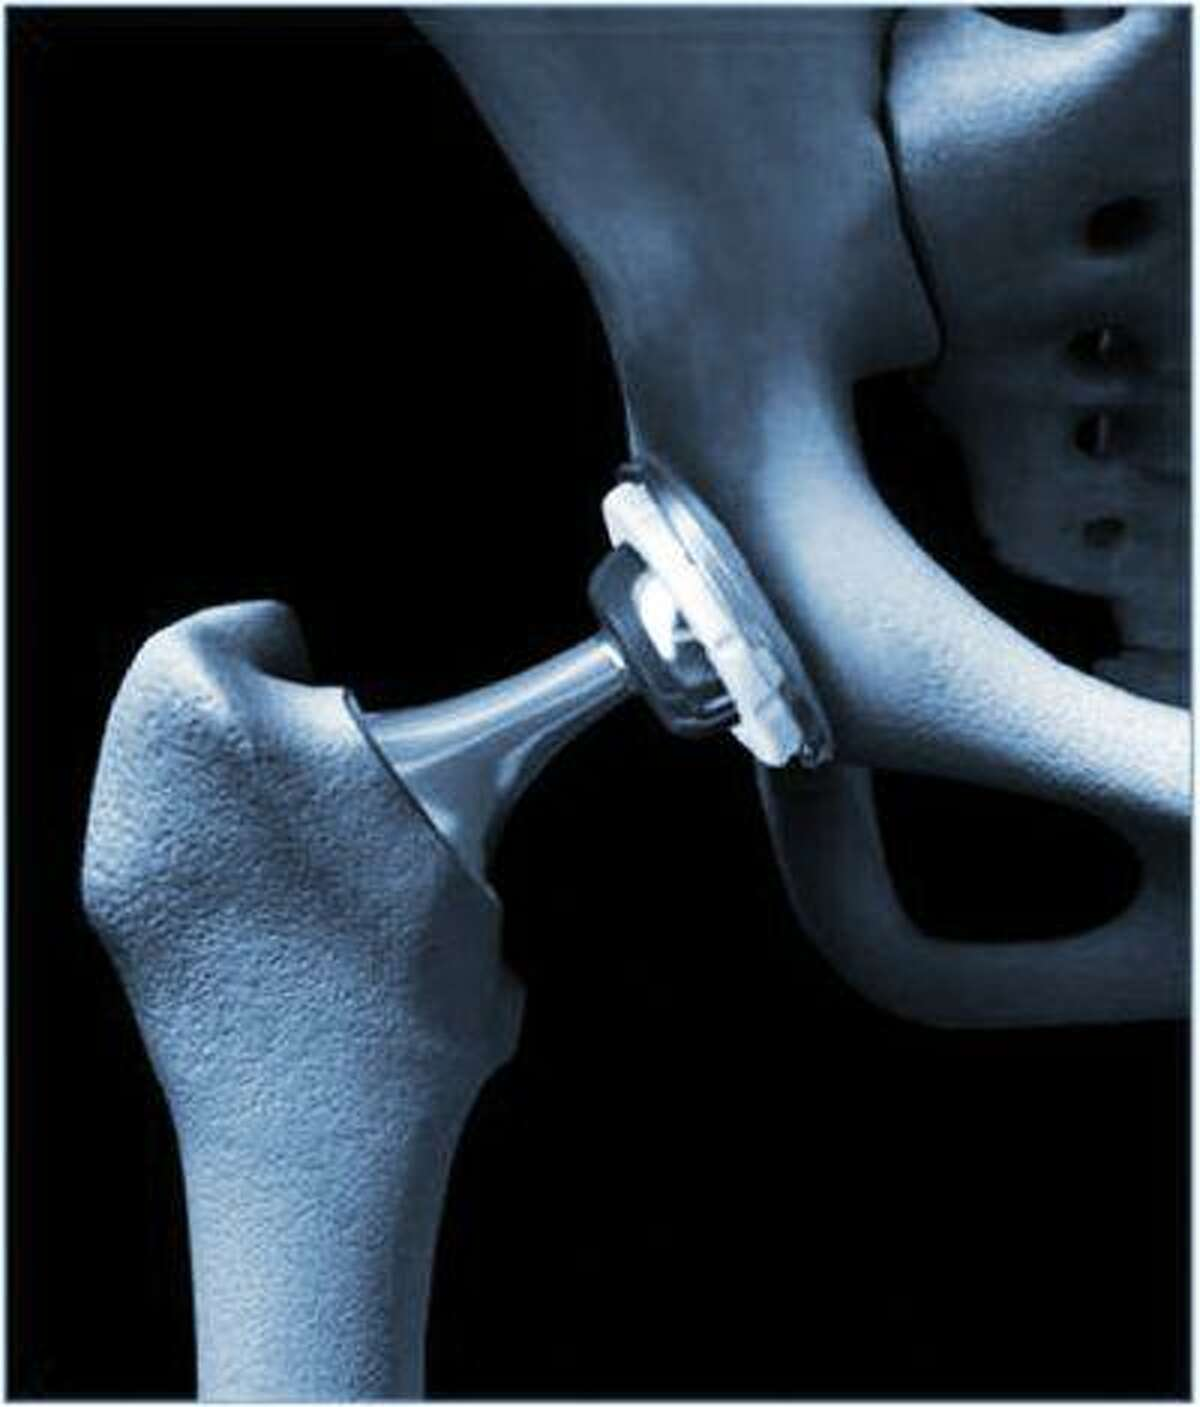 Hip replacement involves removing the joint -- the damaged bone and cartilage -- and replacing it with prosthetic parts made of metal, plastic or ceramics. In a break from past practice, some surgeons prefer to cut into the joint from the front. (Photo credit: Anthony Unger)